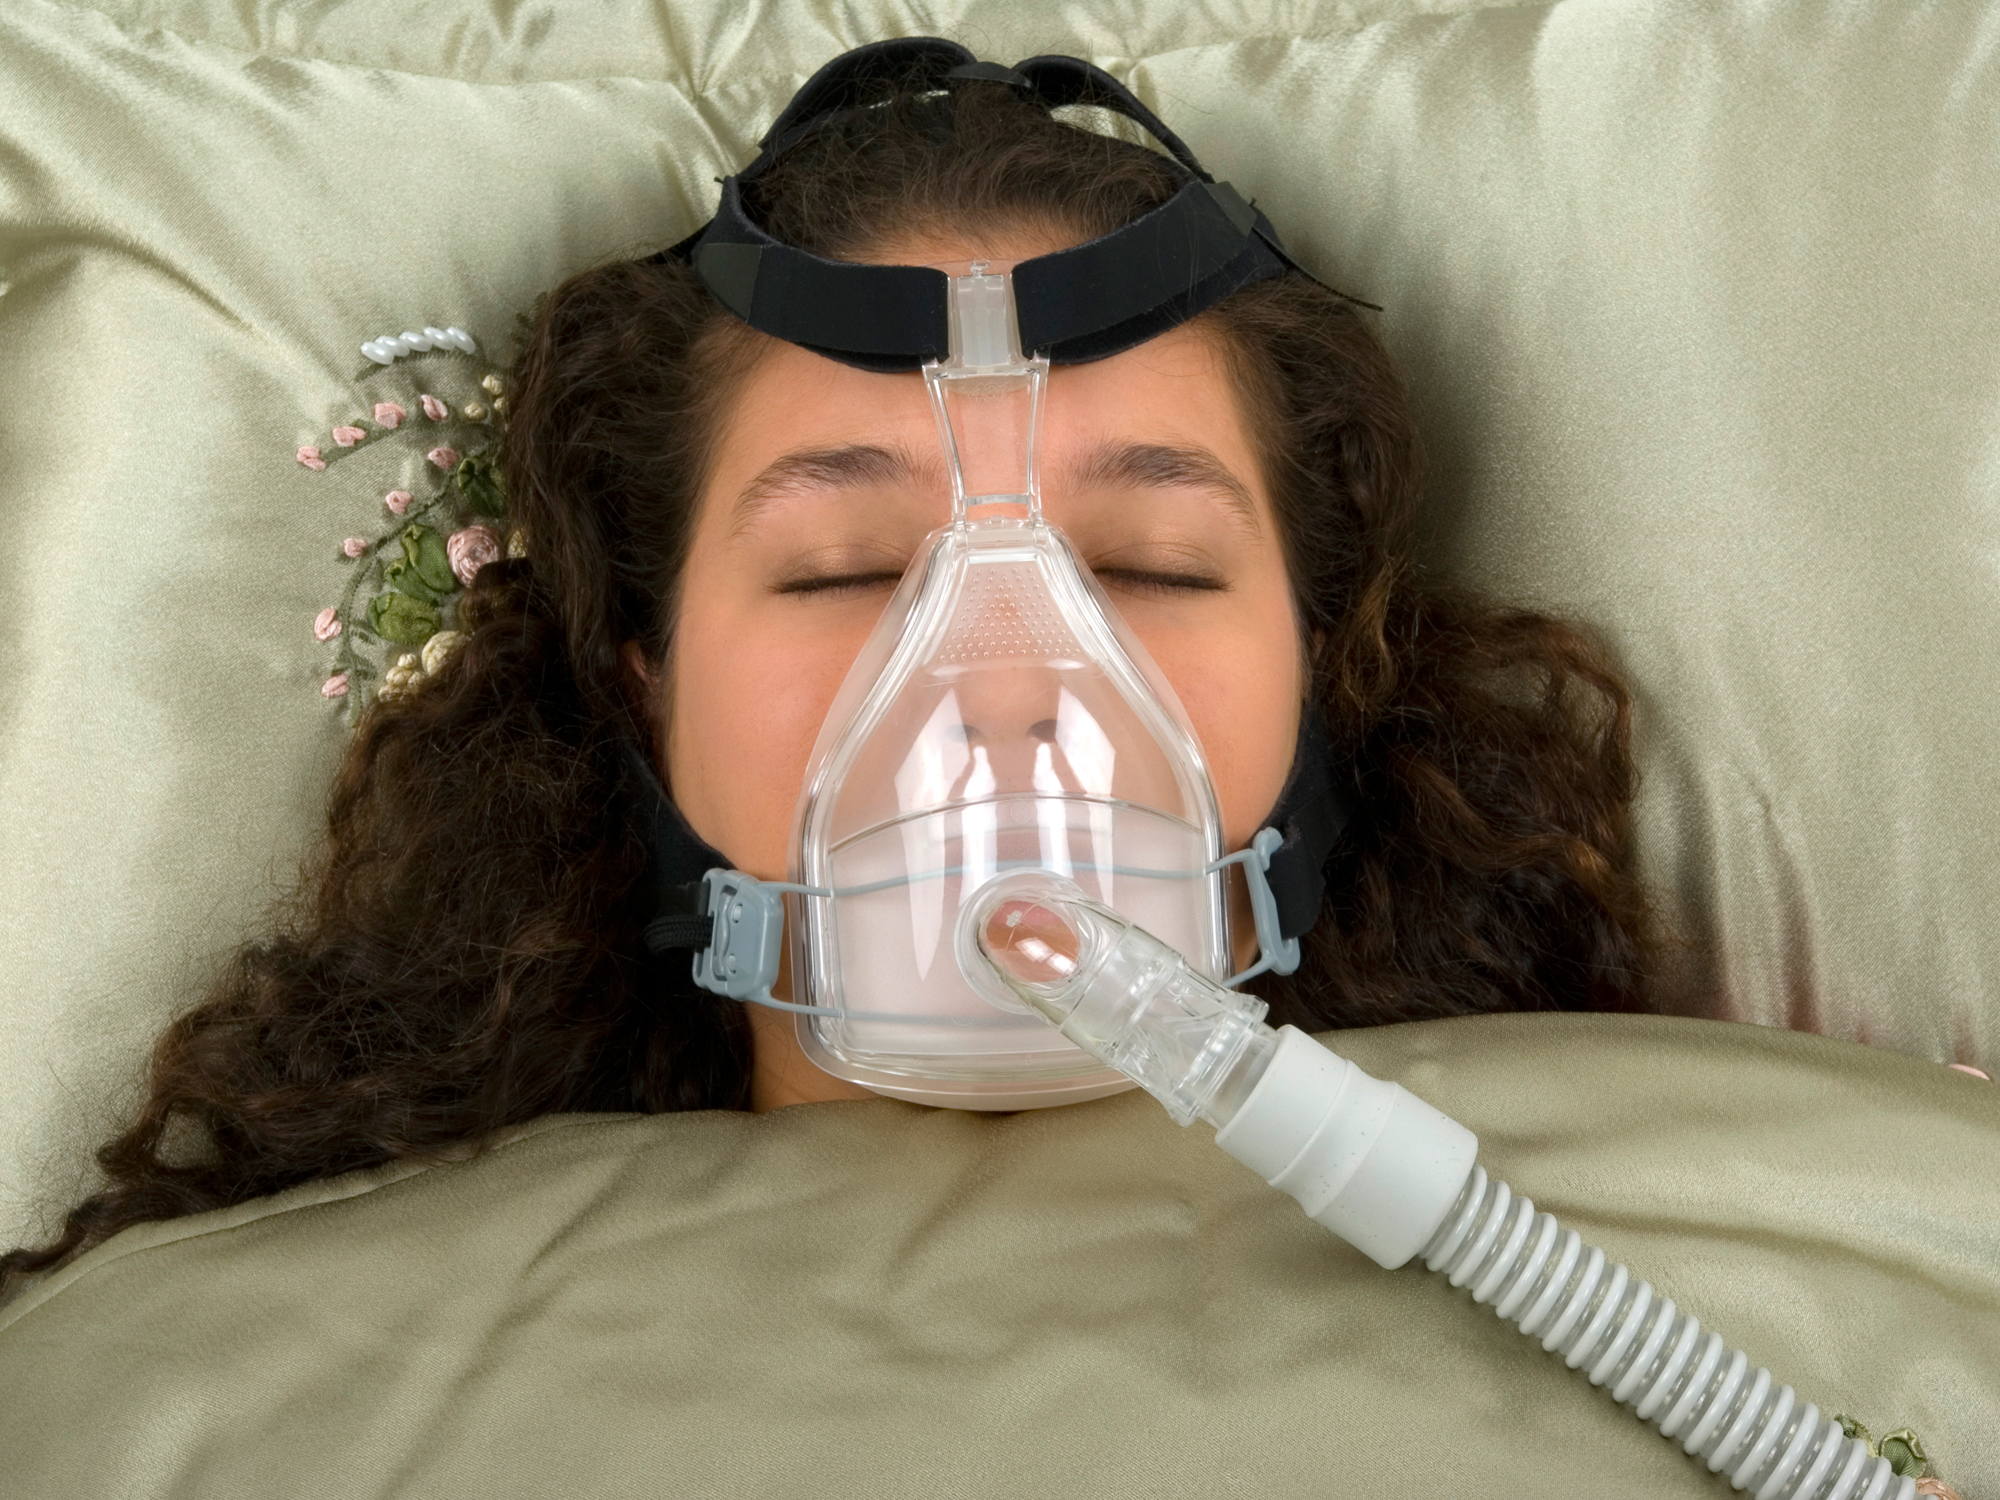 5 ways to avoid the dreaded CPAP machine